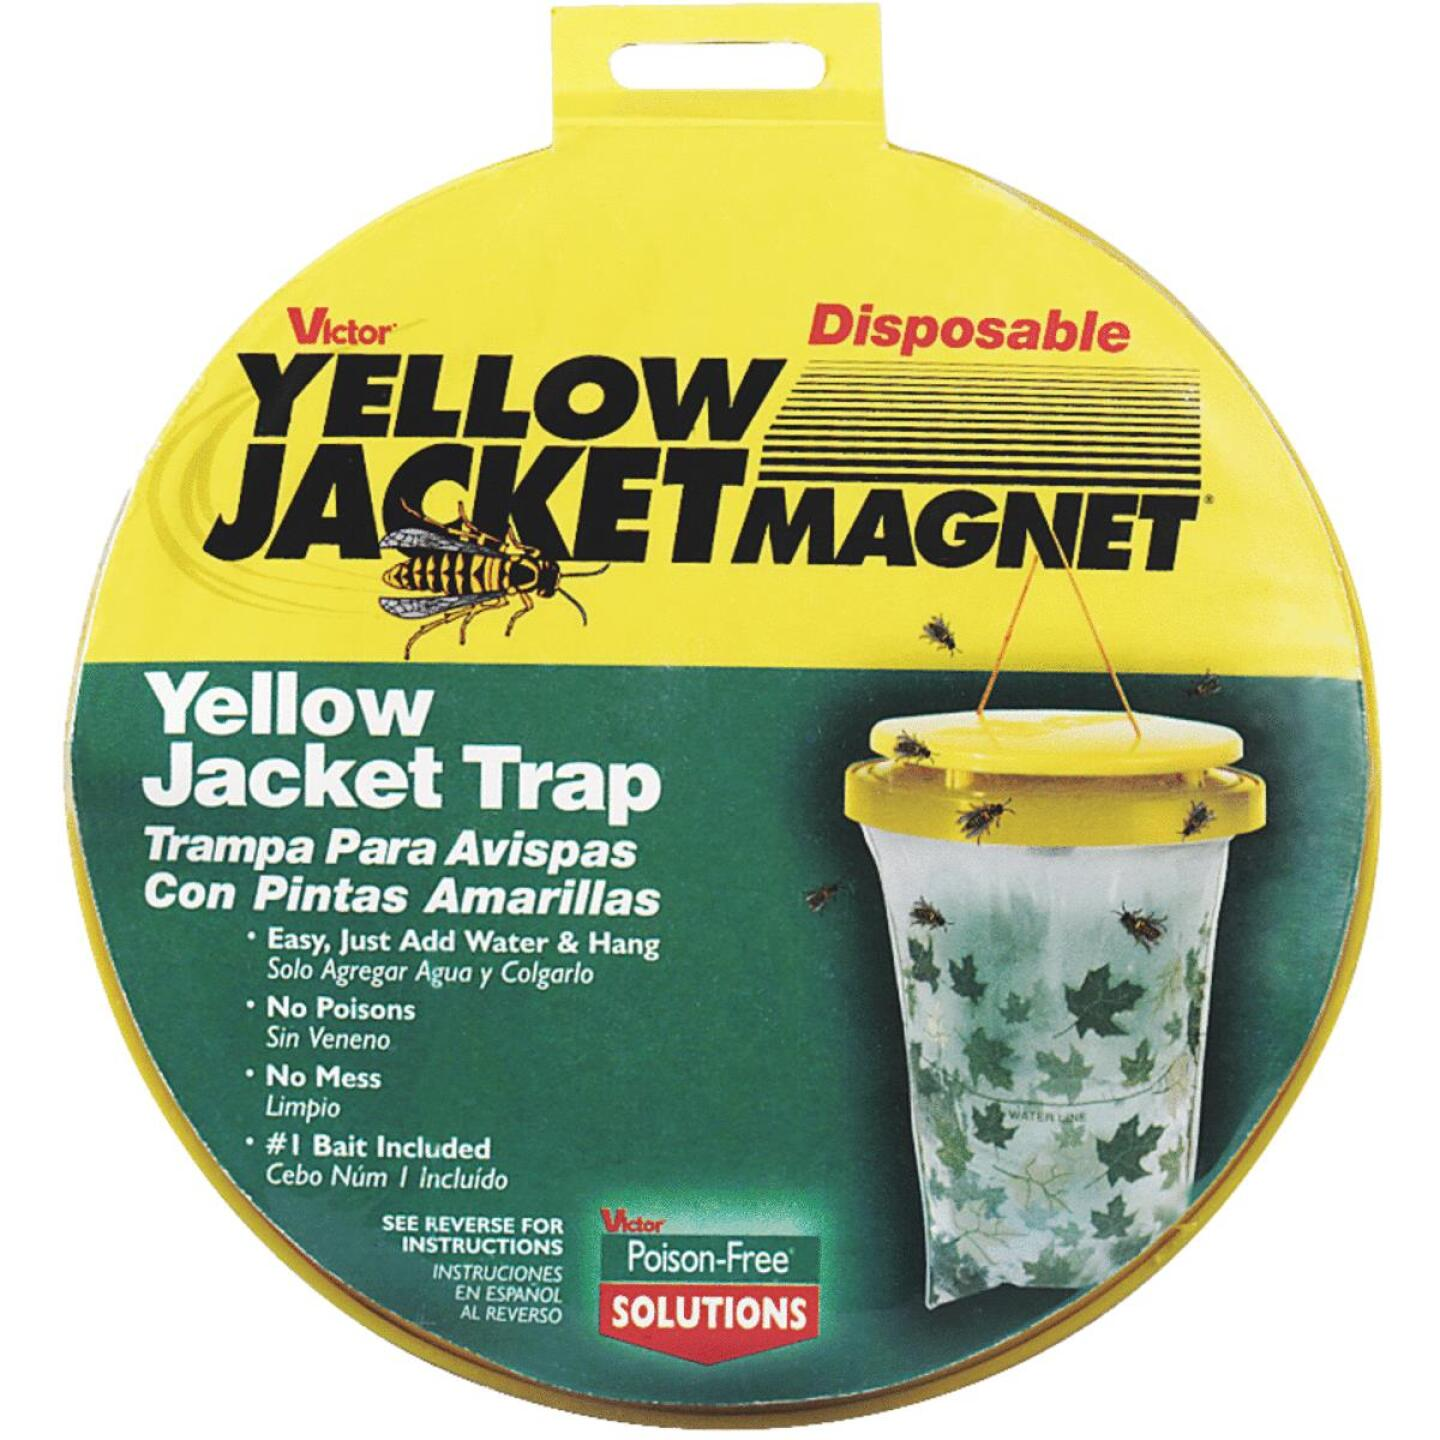 Victor Yellow Jacket Magnet Disposable Yellow Jacket Trap Image 1